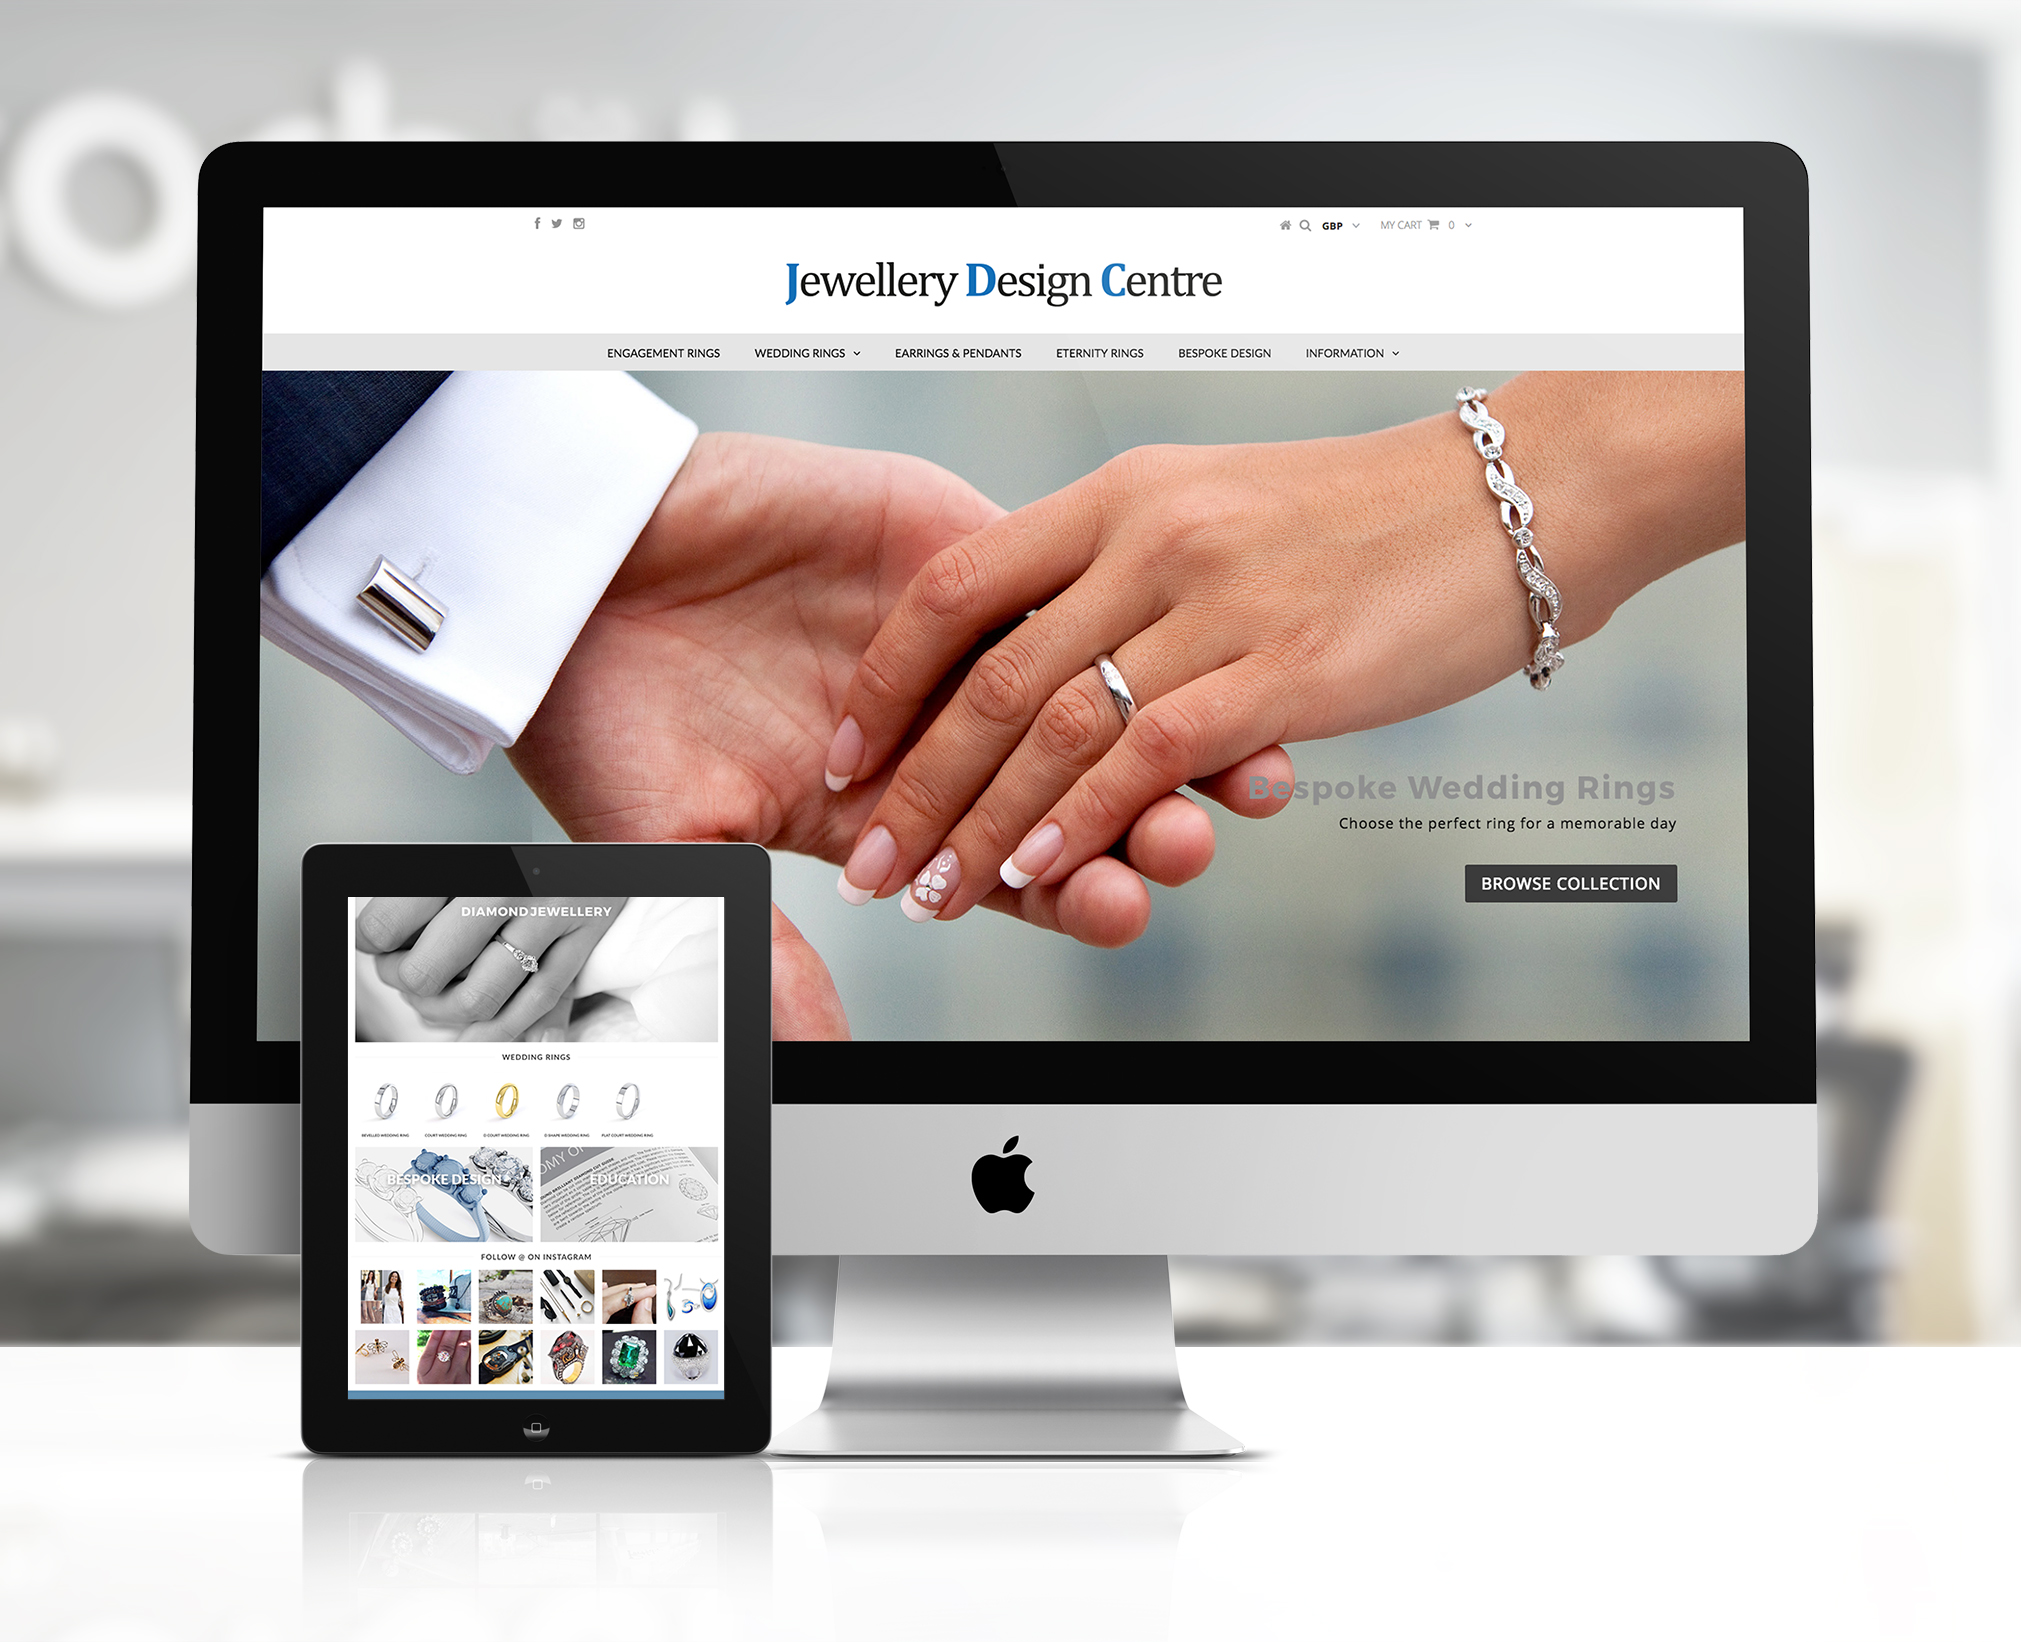 Jewellery Design centre website